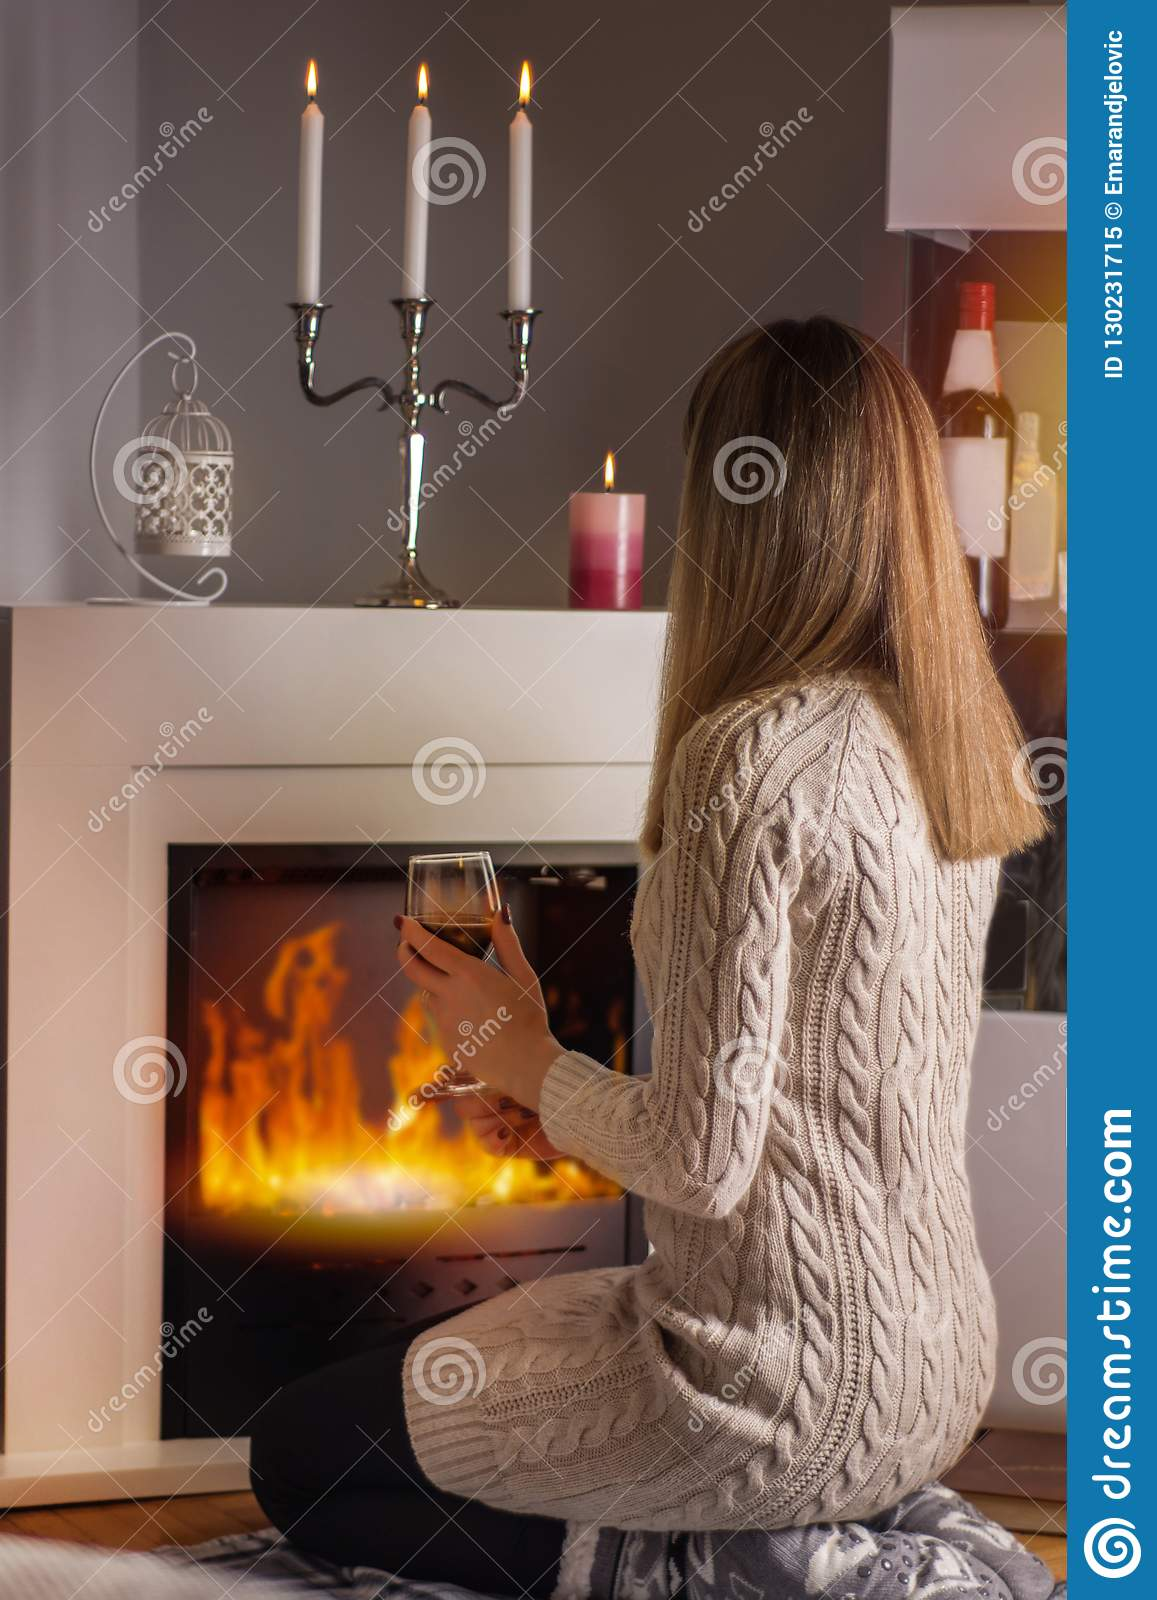 Girl sitting in front of the fireplace and warming with red wine glass in hands